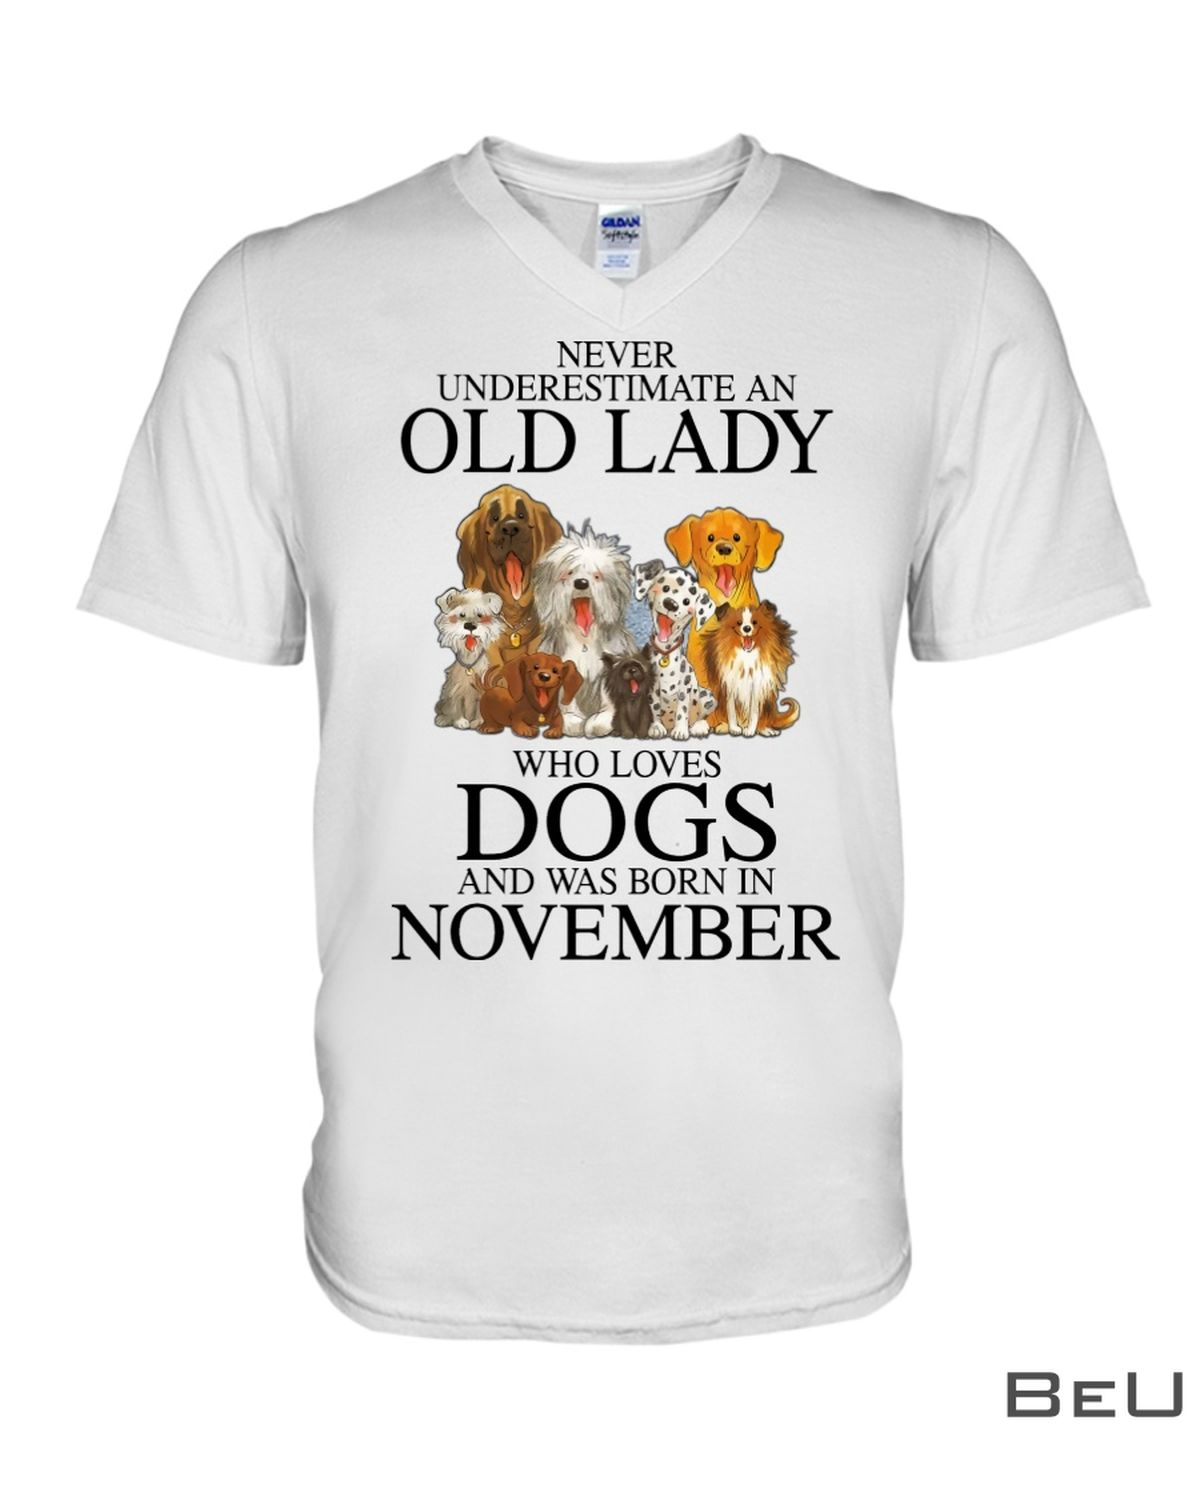 Never Underestimate A November Old Lady Who Loves Dogs Shirtx